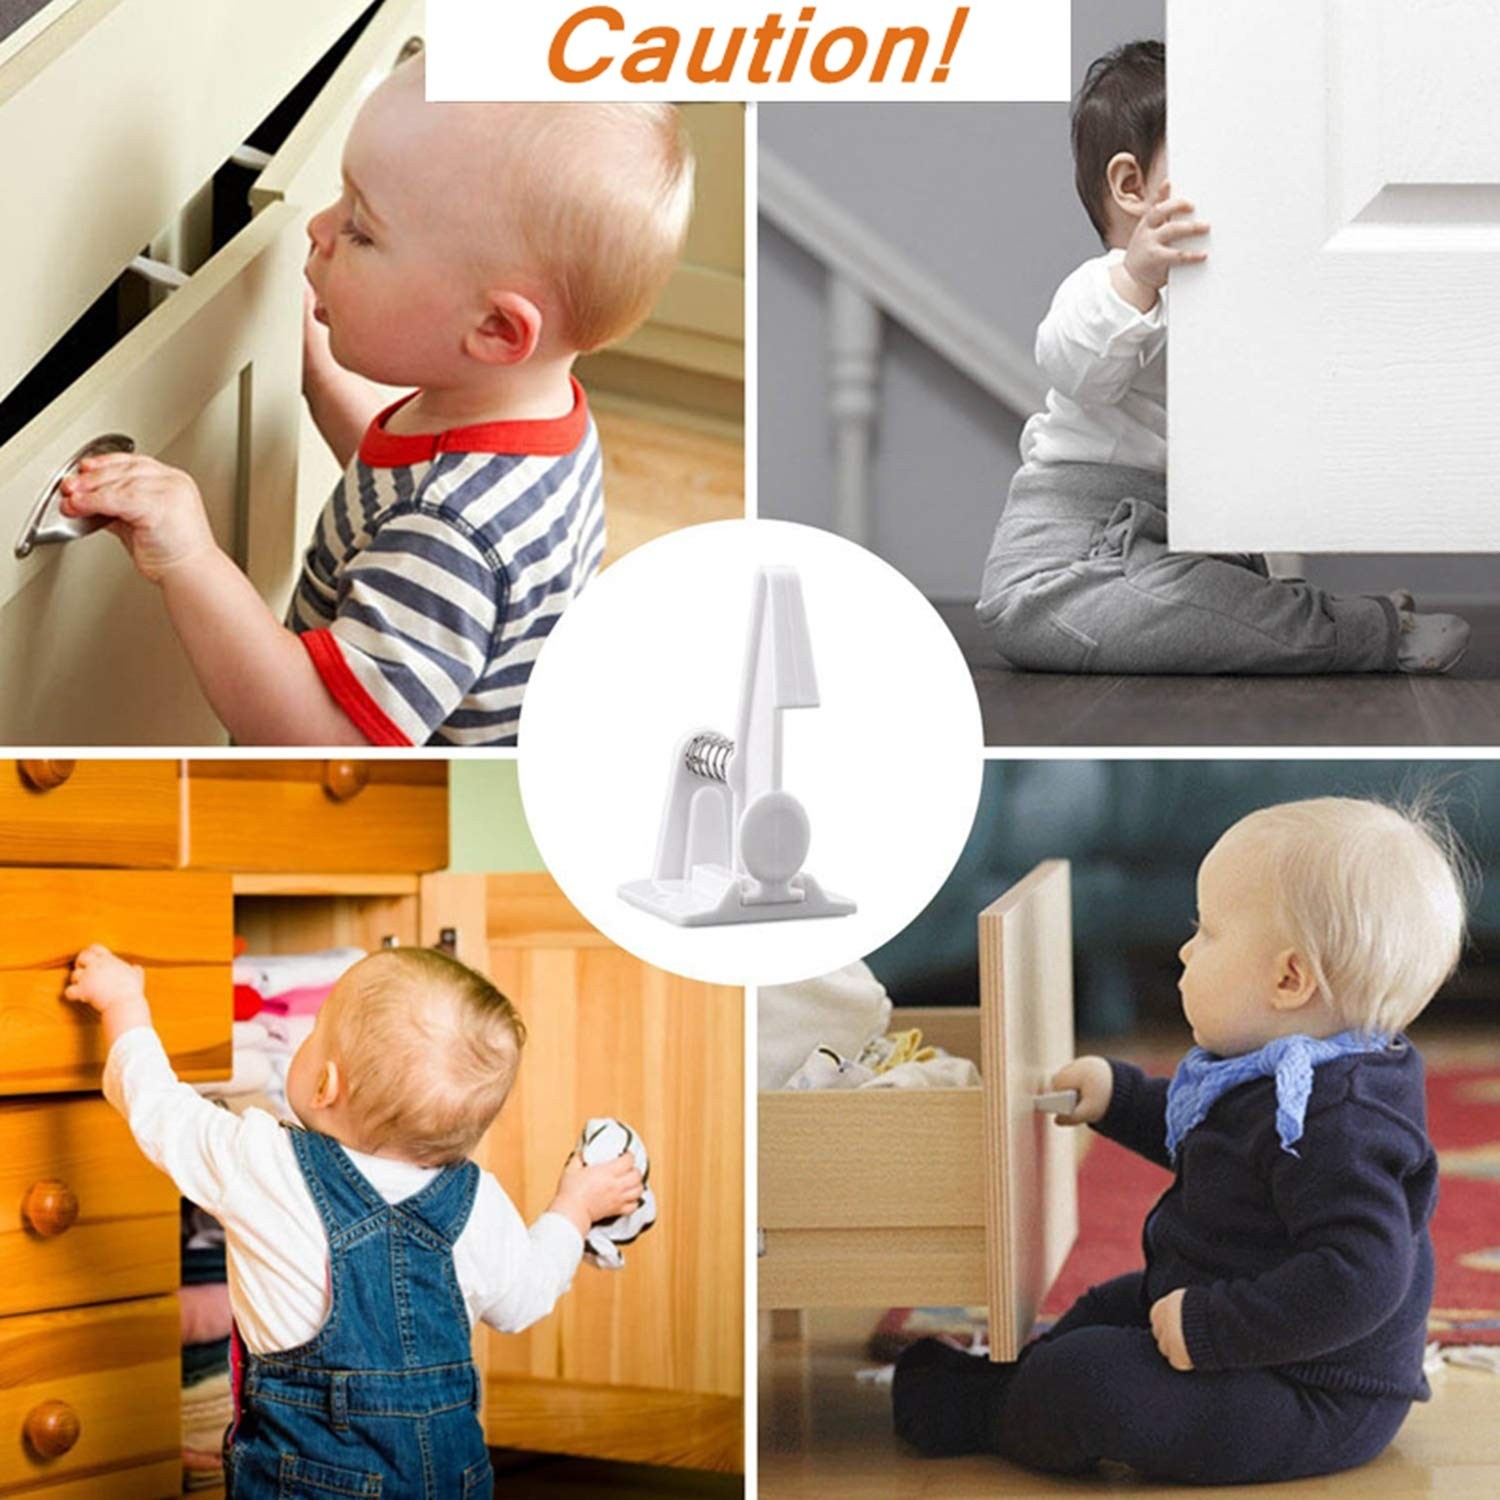 Cabinet Fridge White Closets. Tools or Screws Easy to Install with Strong 3M Adhesive Baby Safety Proof Kit Cupboard Latches Set No Drill for Drawers Door 10 Pack Child Safety Cupboard Locks